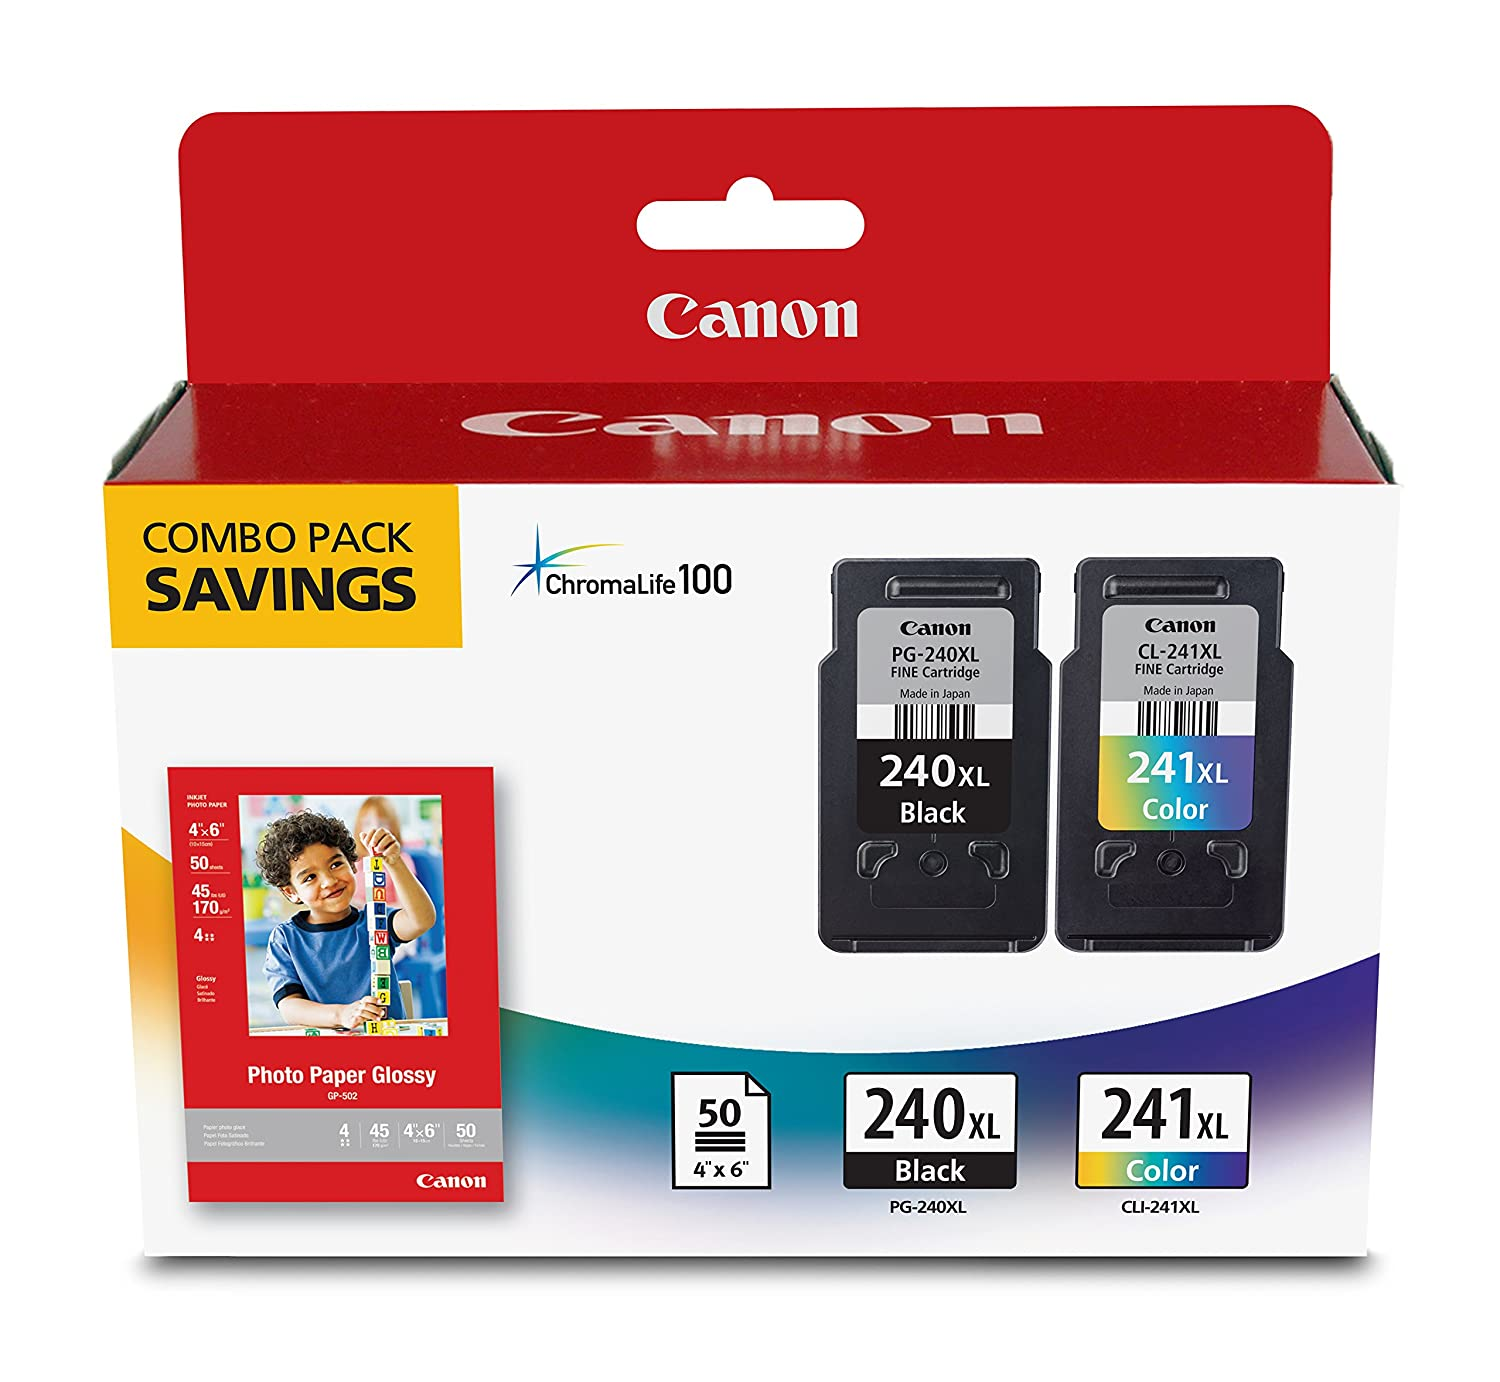 Amazon Canon Fine Cartridge PG 240XL CL 241XL With Photo Paper Glossy 50 Sheets 4x6 Office Products